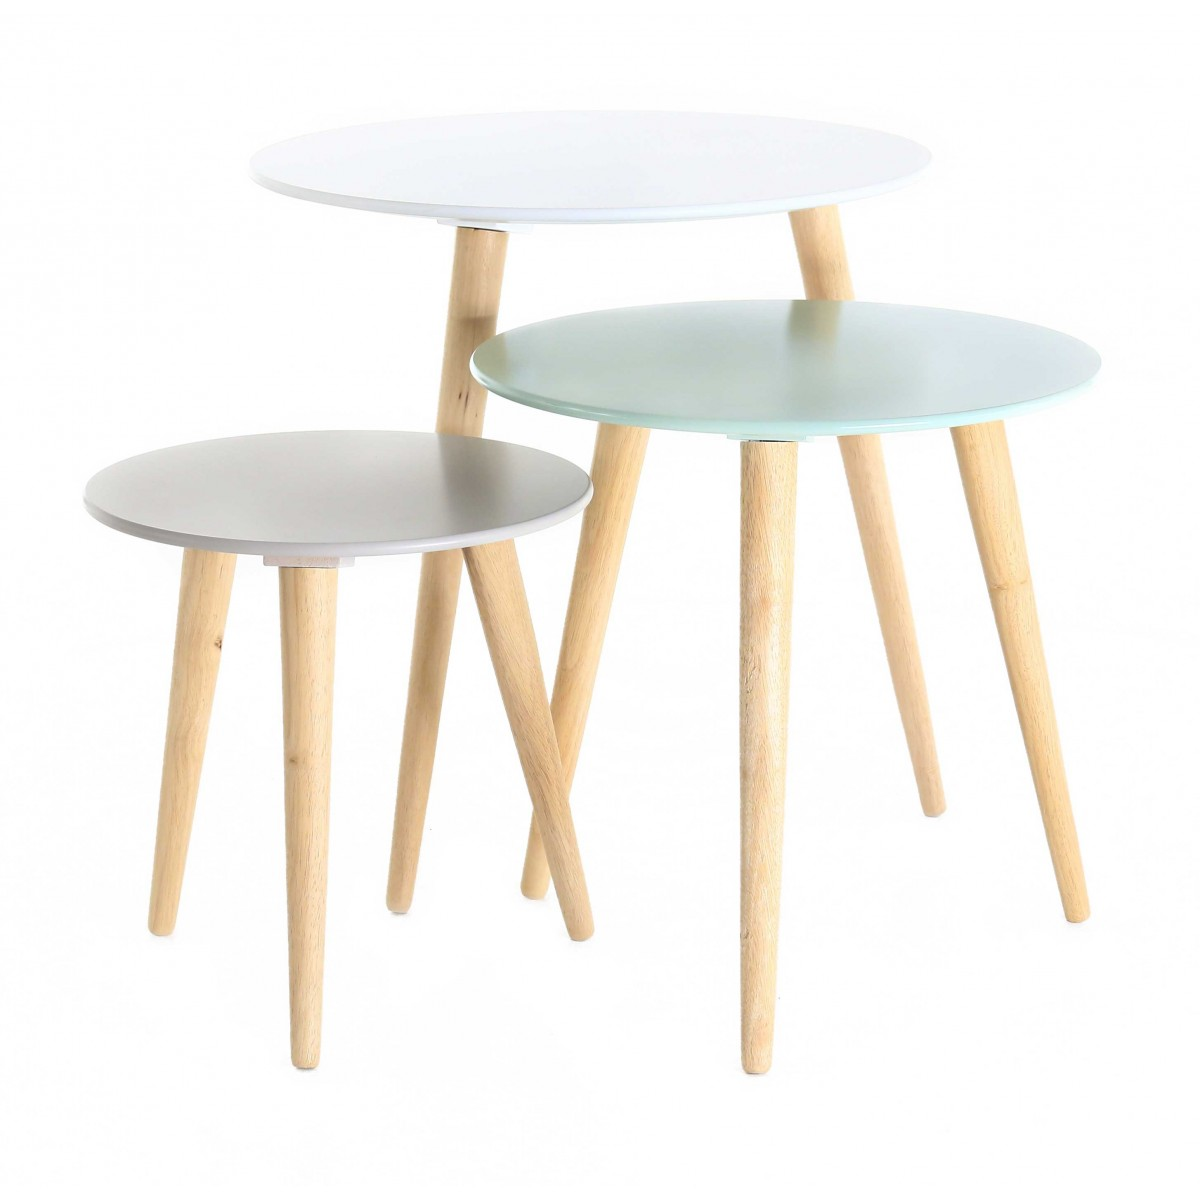 Set de 3 tables gigognes rondes scandinaves mooviin for Table basse gigogne ronde bois